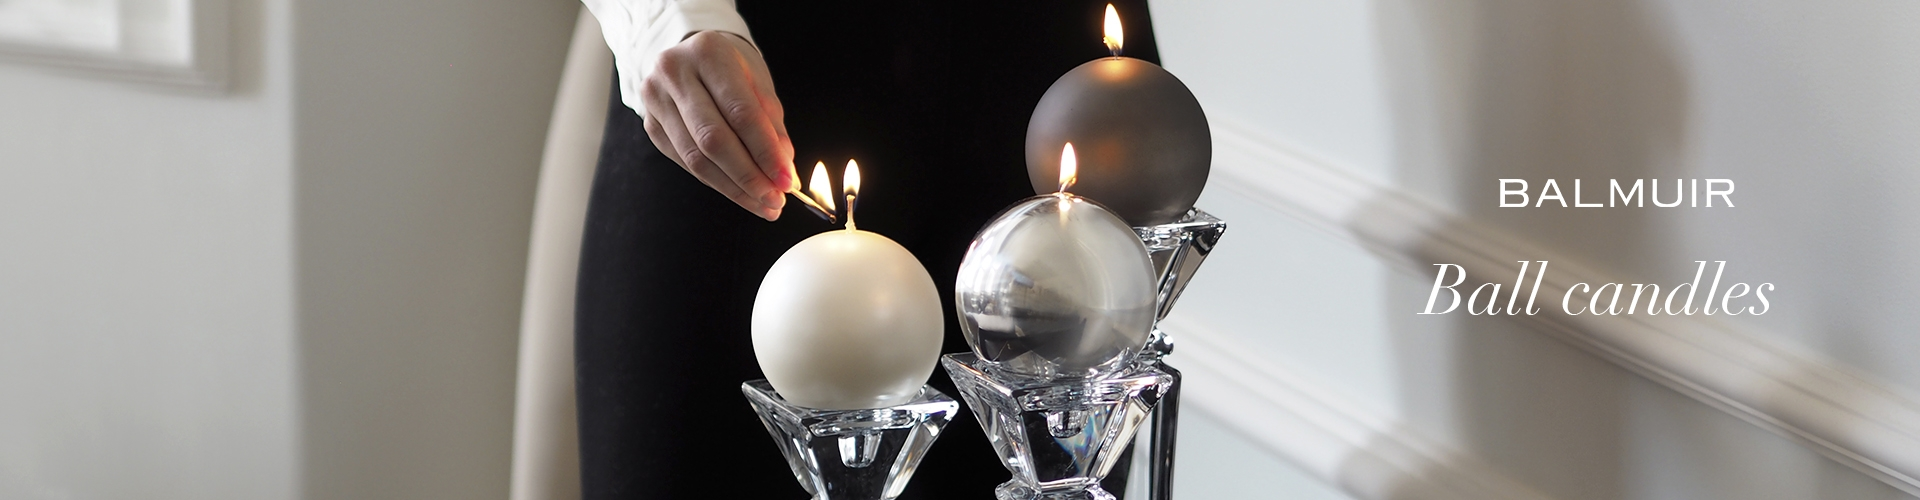 Buy Candles Online Ball Candles Buy Online Balmuir